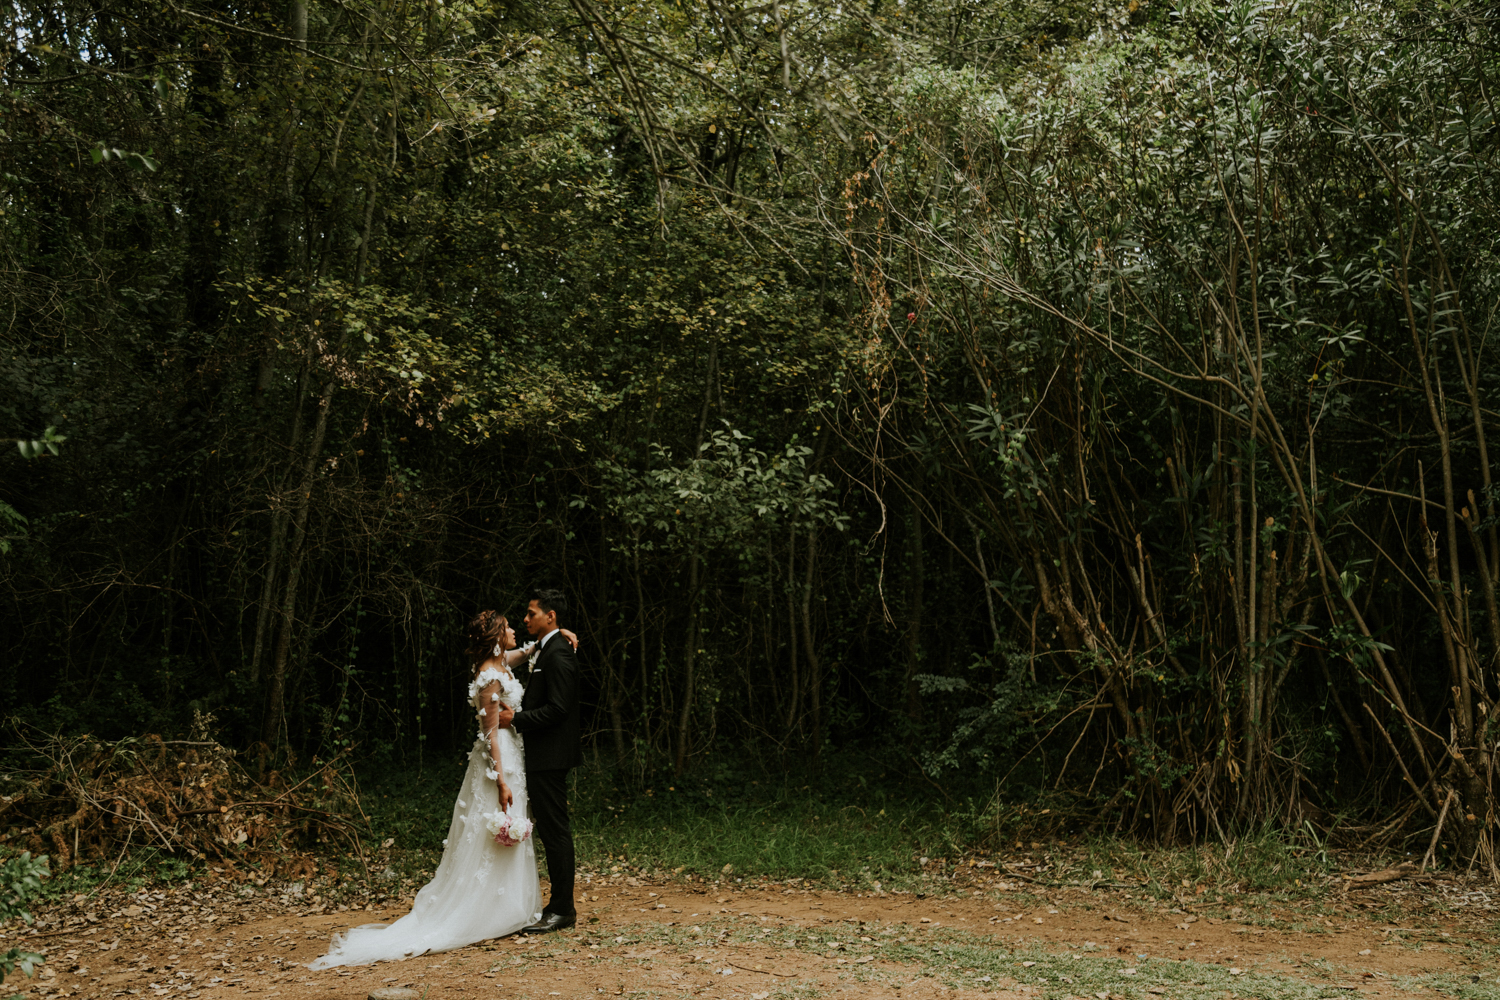 Forest Wedding Cape Town - Bianca Asher Photography-55.jpg